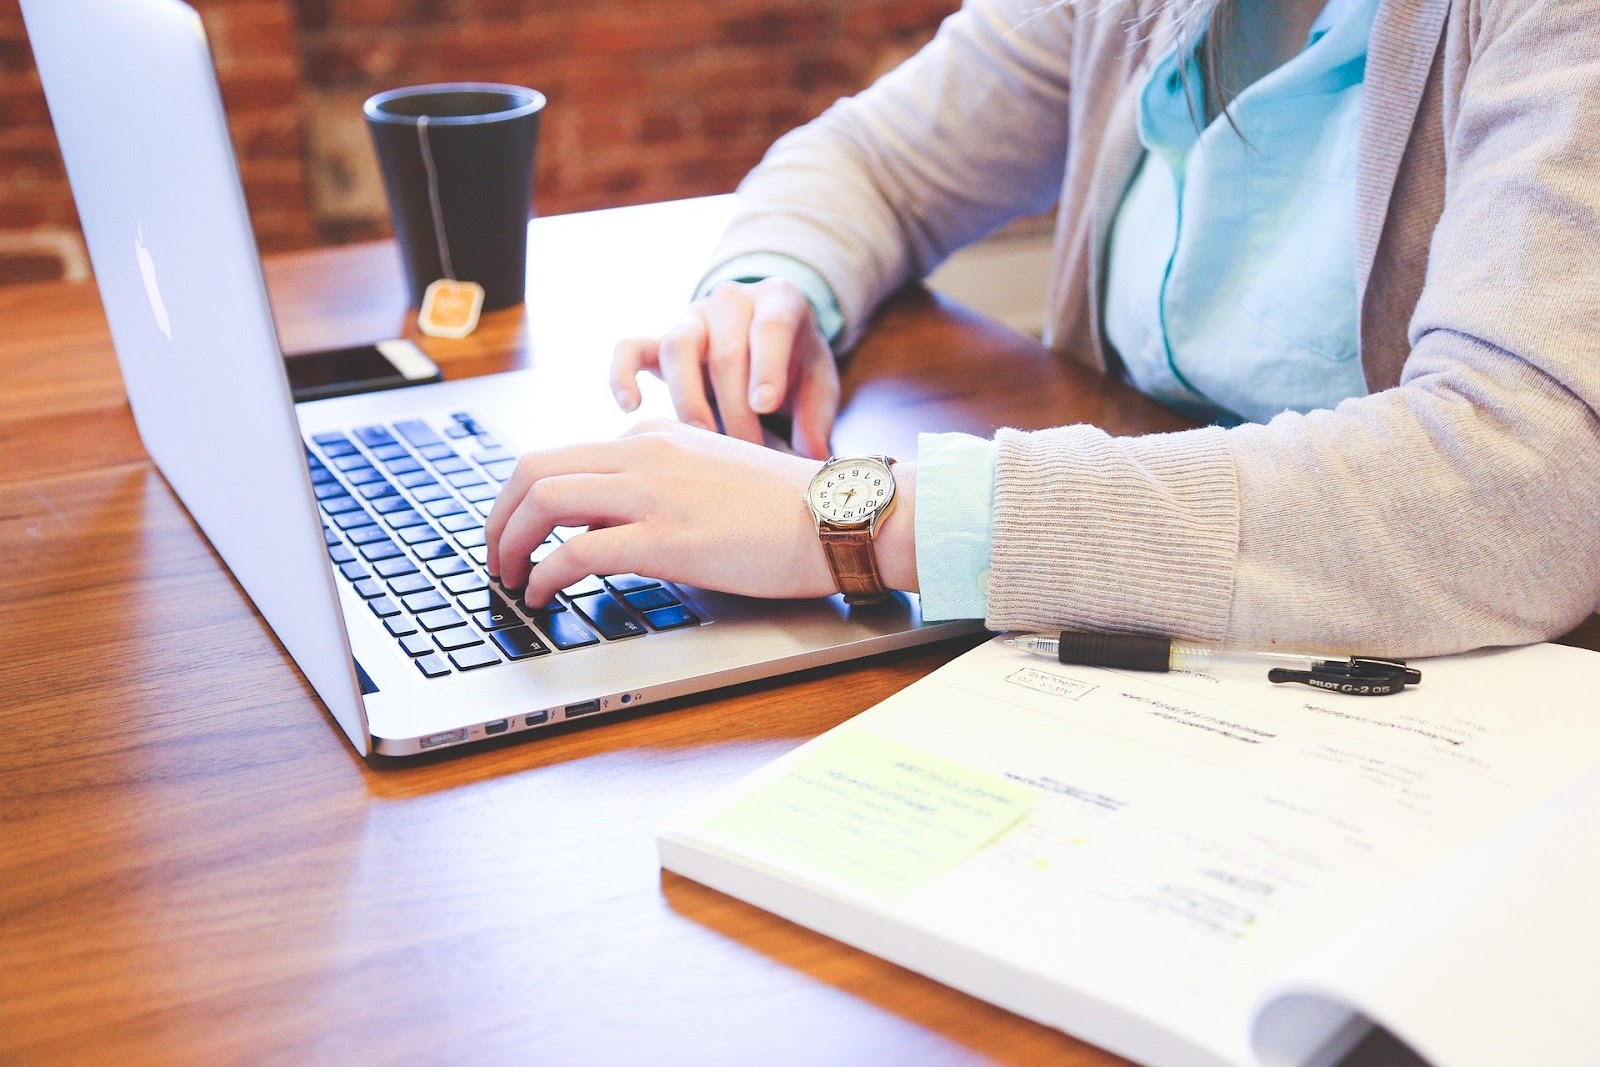 woman open laptop marketing small business tips